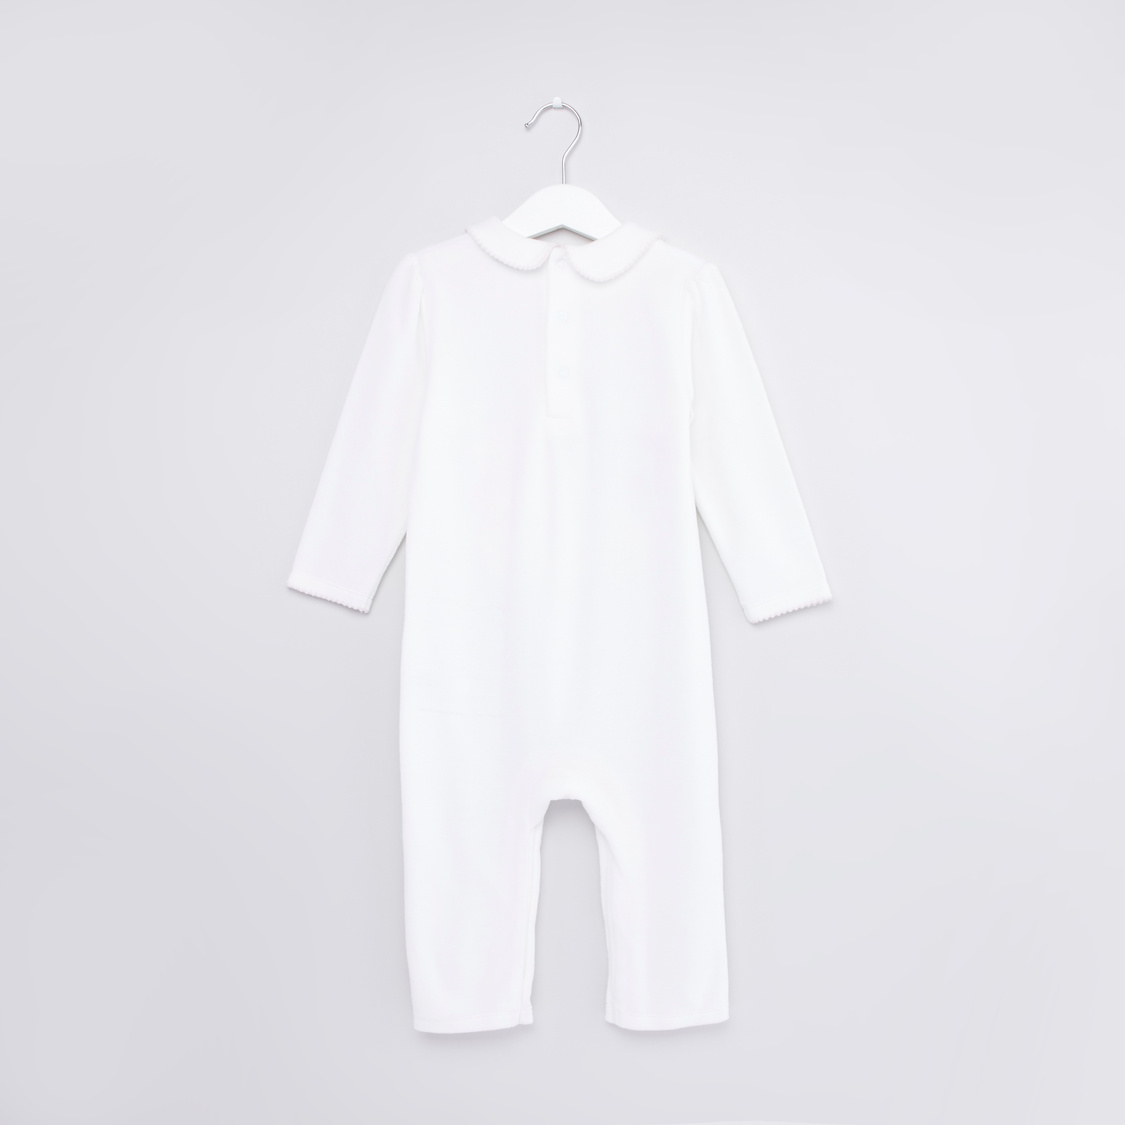 Textured Sleepsuit with Long Sleeves and Cap